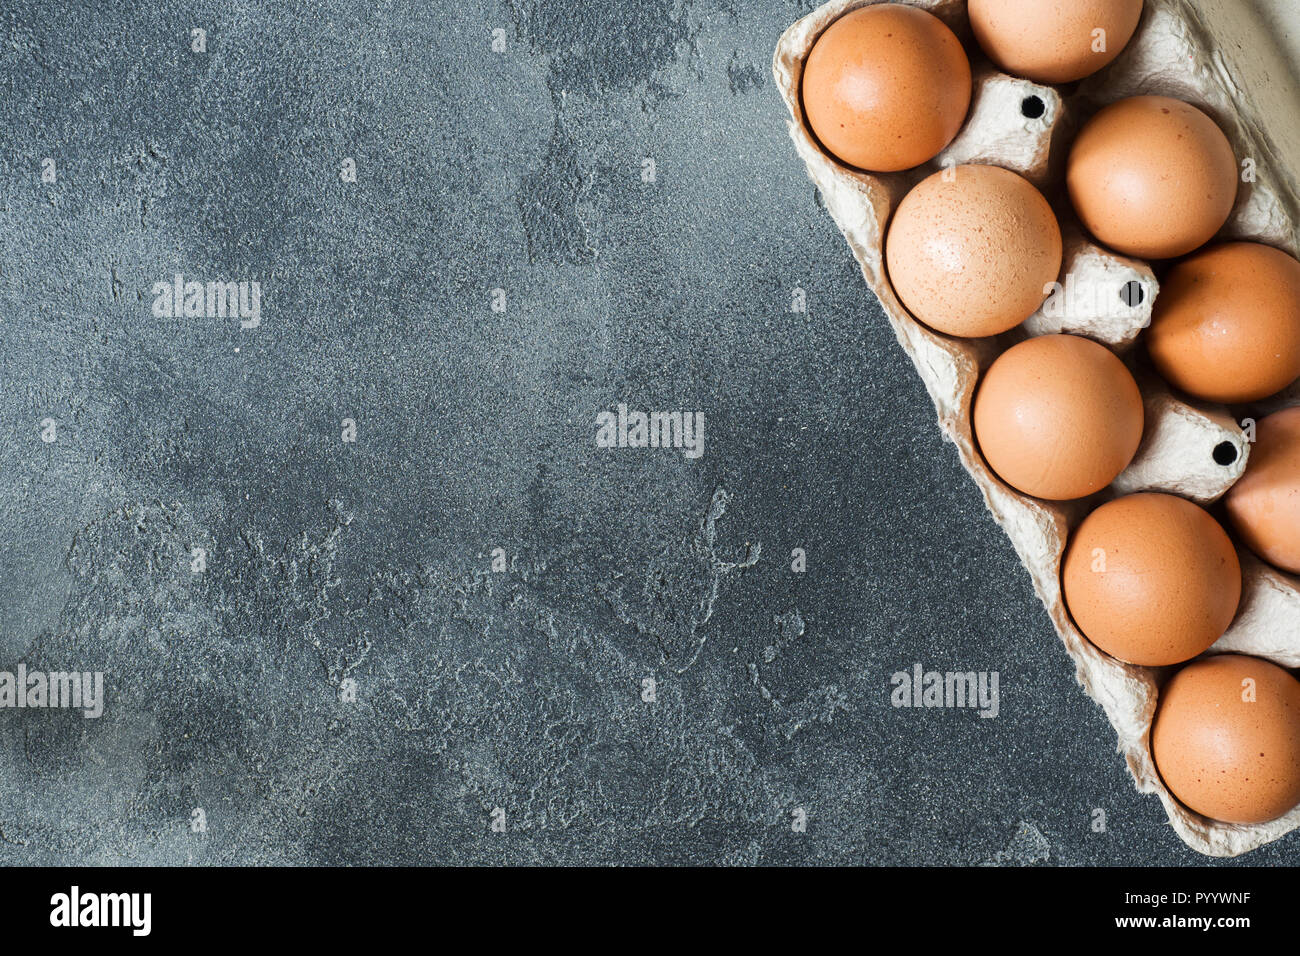 Chicken eggs in a cardboard box on a dark brutal table - Stock Image